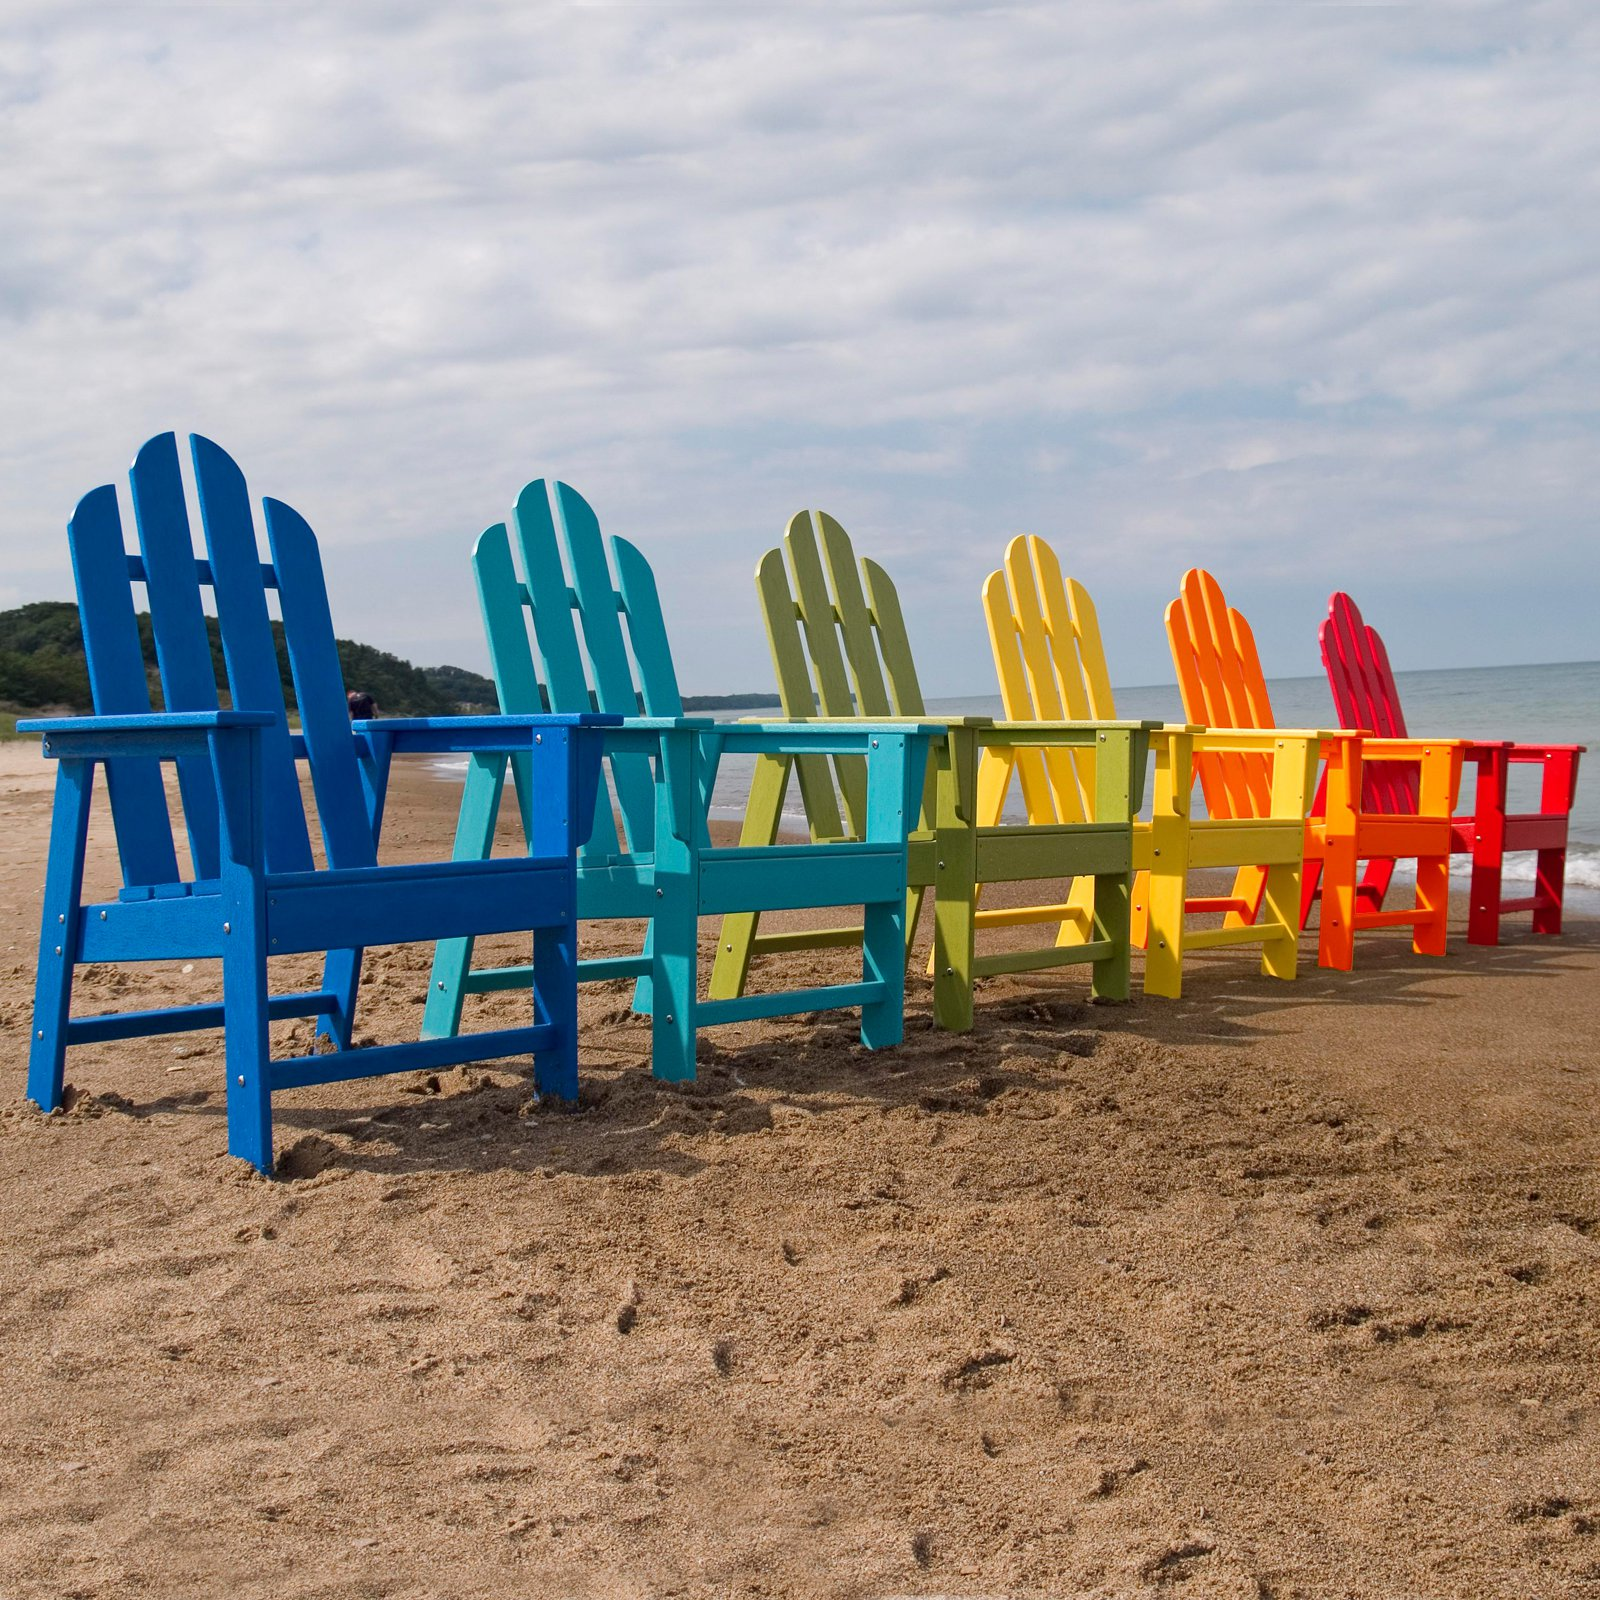 POLYWOOD® Long Island Recycled Eco-Friendly Plastic Adirondack Chair